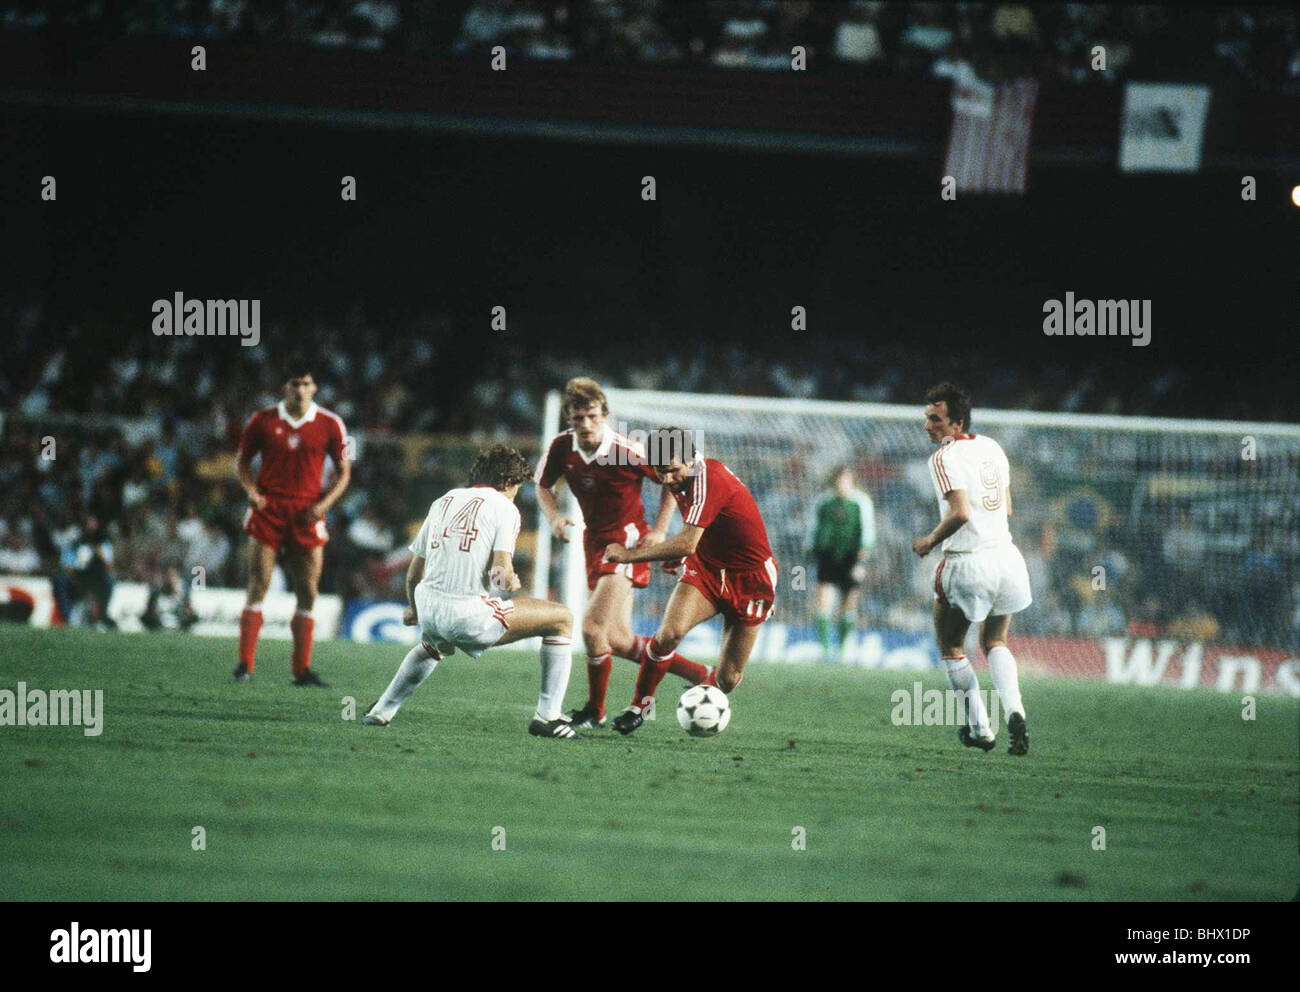 Poland v Russia 1982 World Cup Sergei Borovski looks to time his tackle as Wlodimierz Smolarek tries to steam past - Stock Image